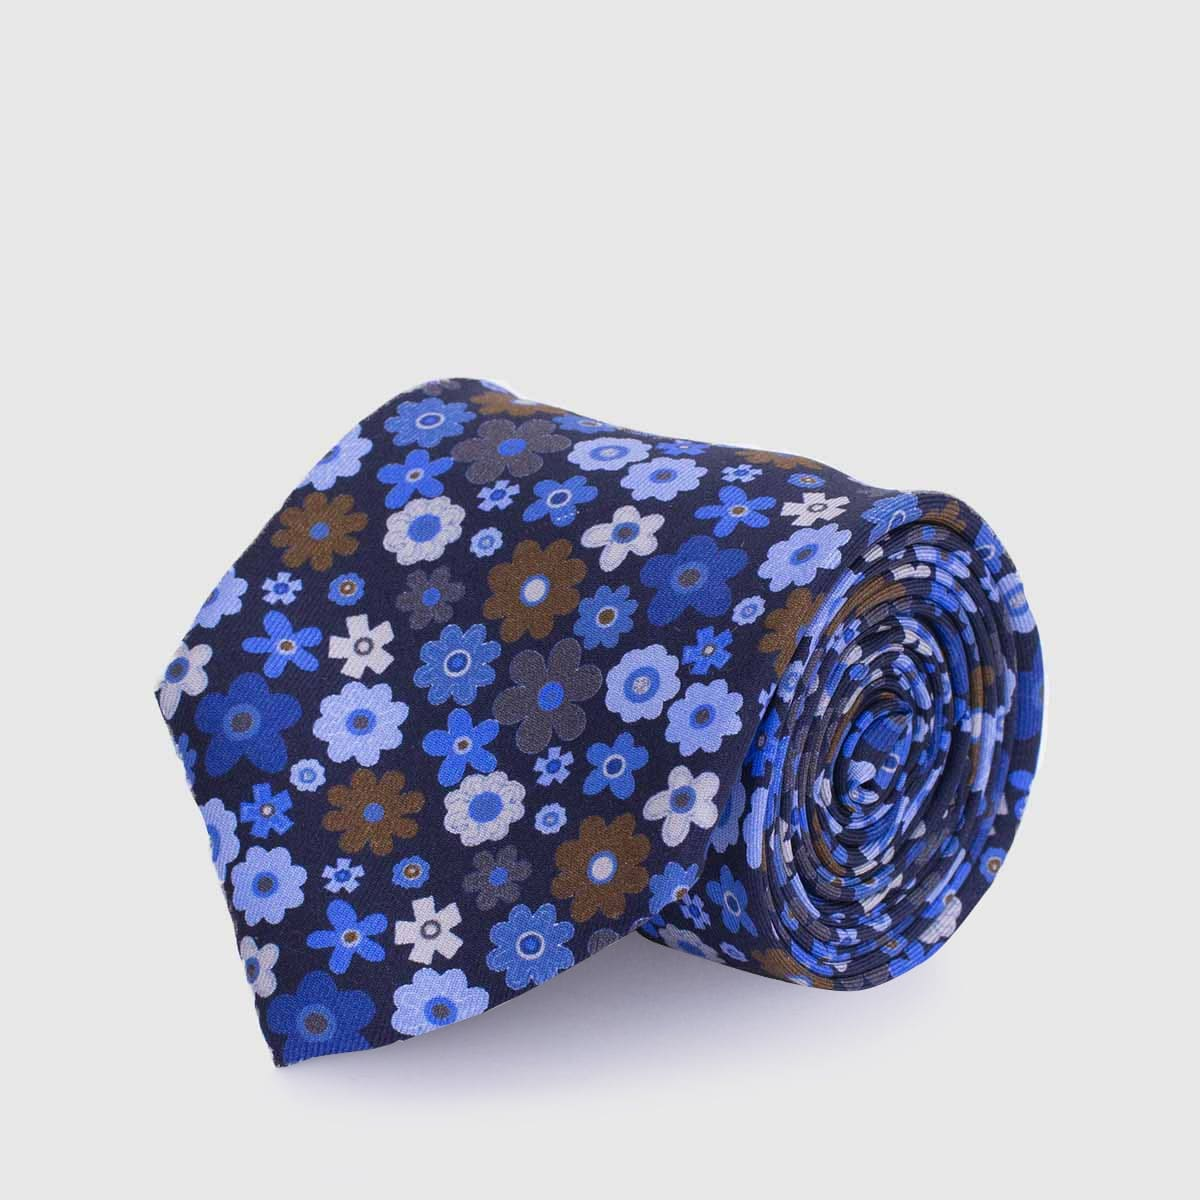 100% 5 Fold Silk Tie in a blue background and flowers